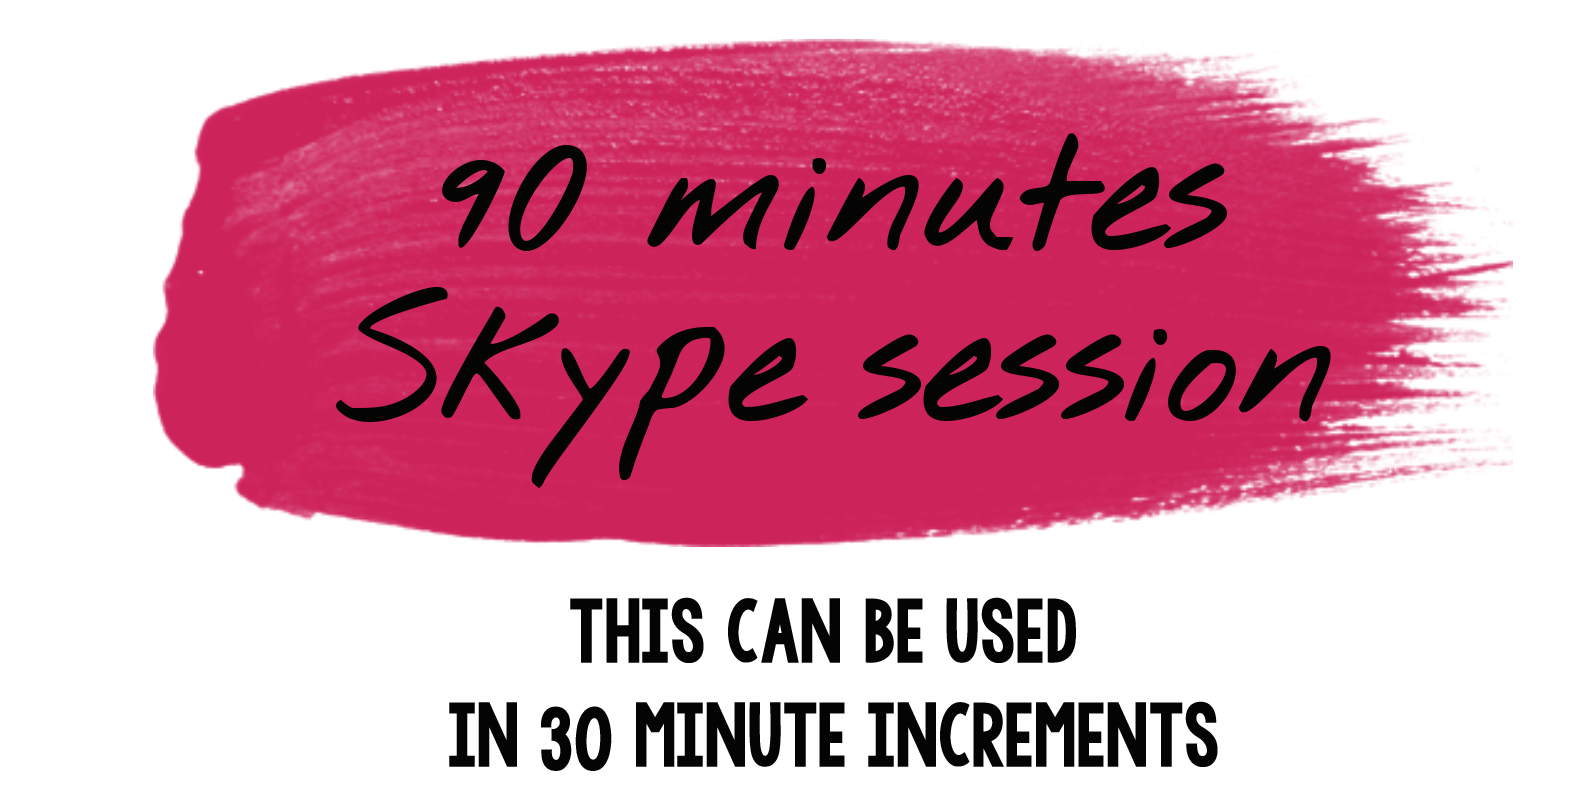 These sessions can be done in person or over Skype/Zoom.